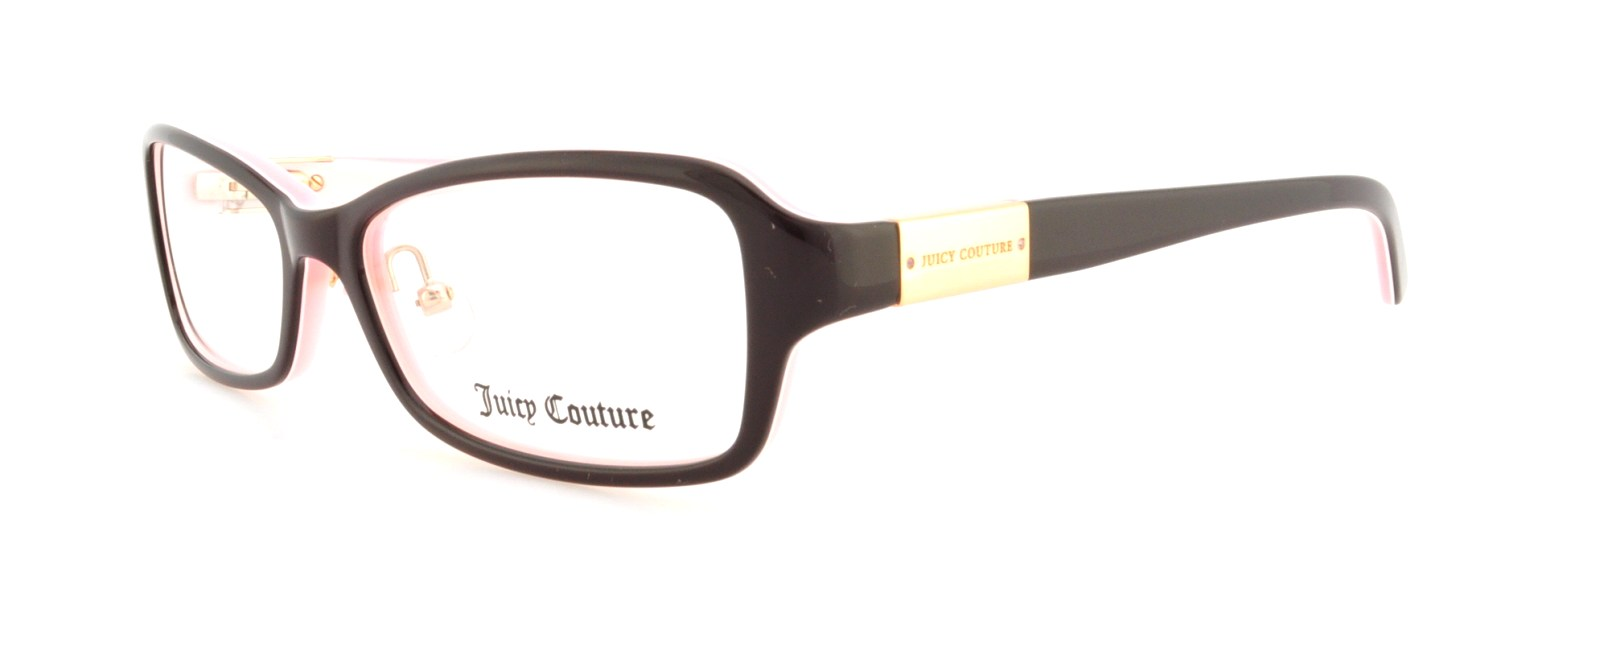 1ca927e3ce6 Designer Frames Outlet. Juicy Couture WILSHIRE F